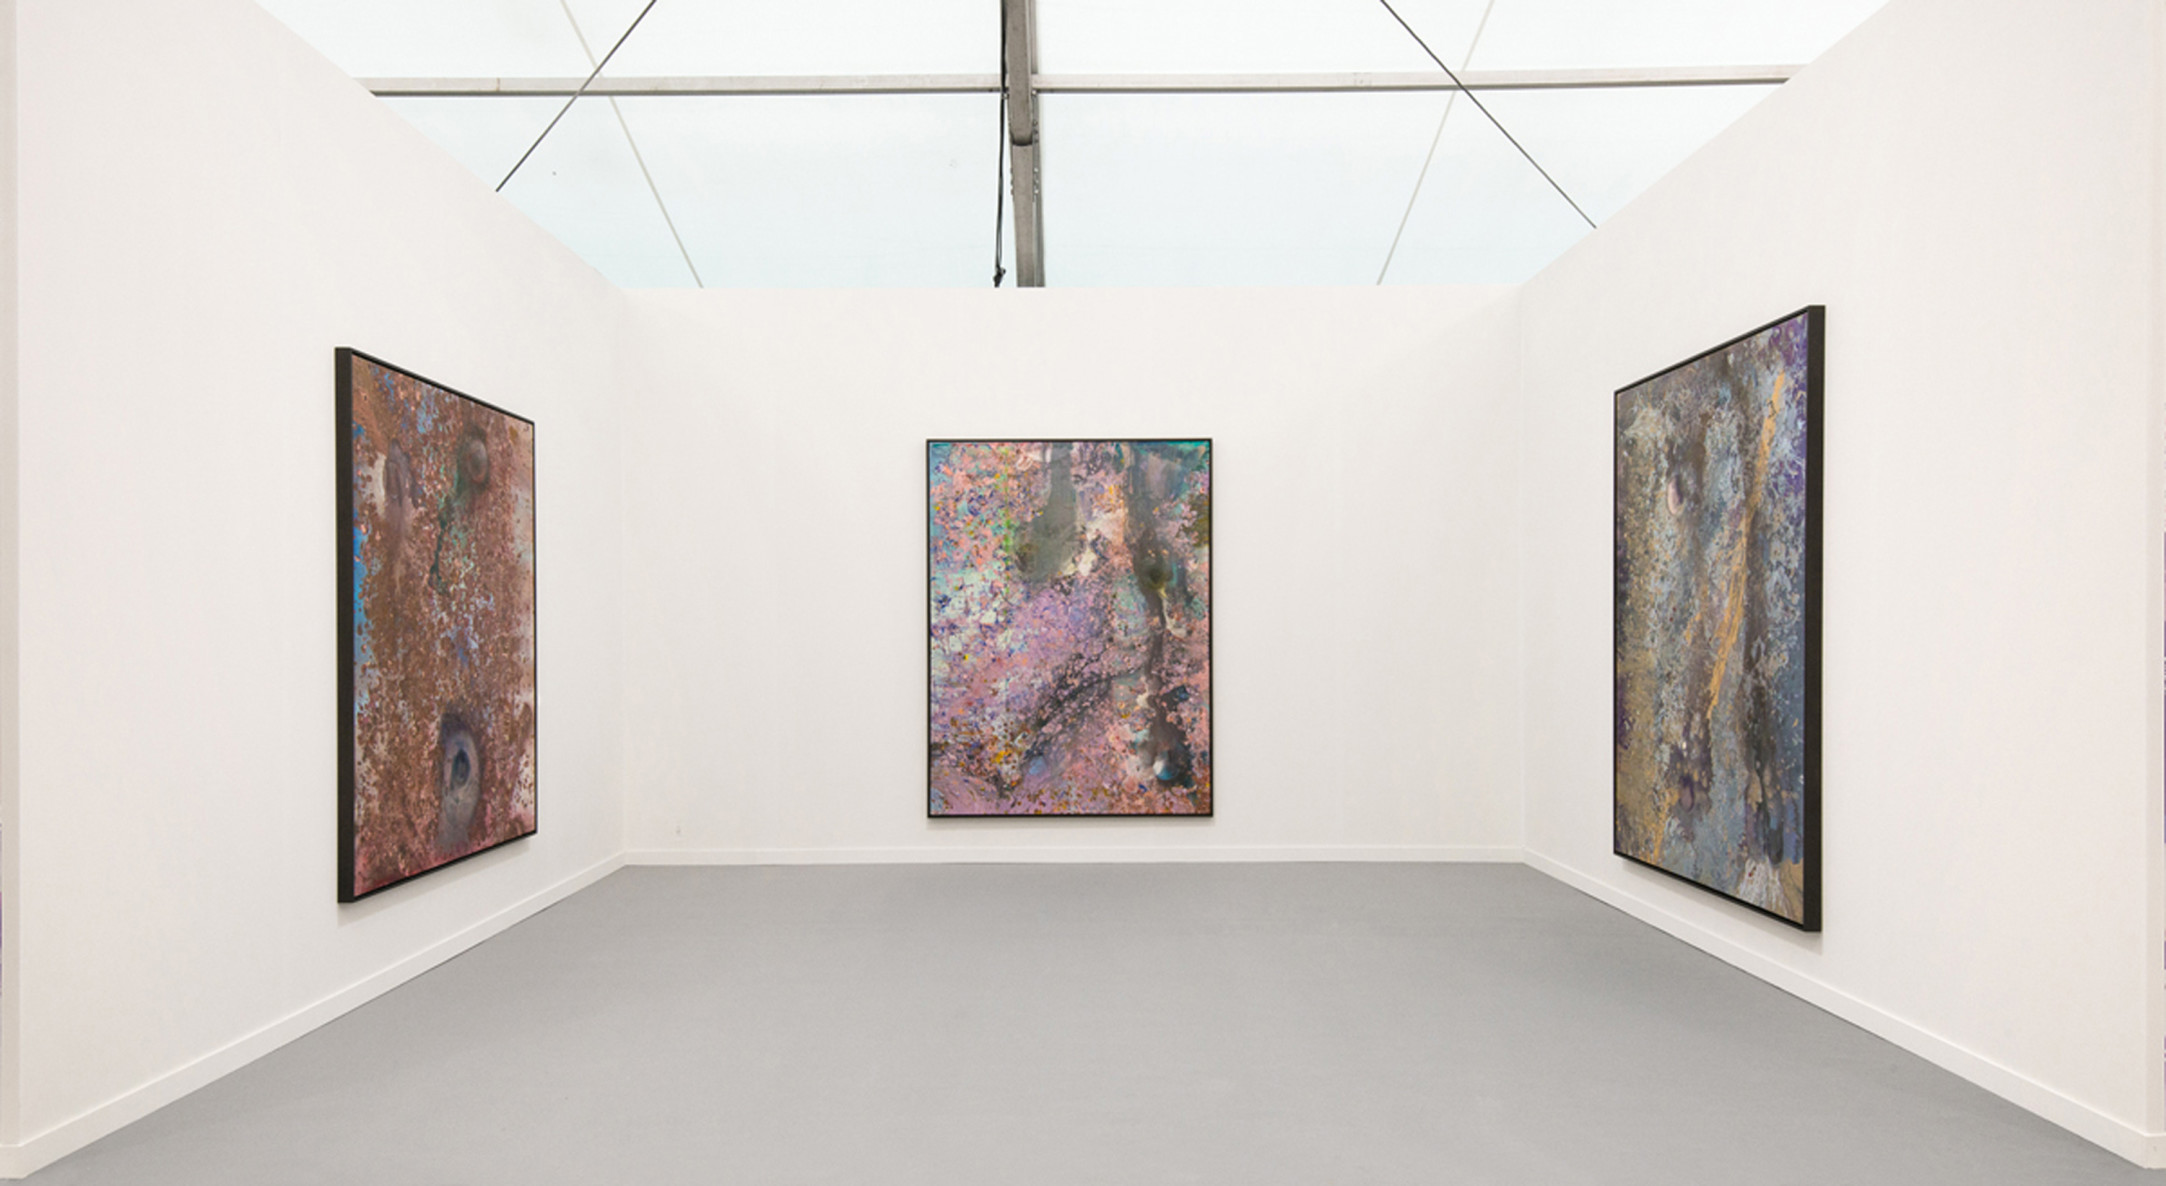 Frank Bowling, Installation view, Hales Gallery at Frieze Art Fair New York   Booth D26, 5 - 8 May 2016